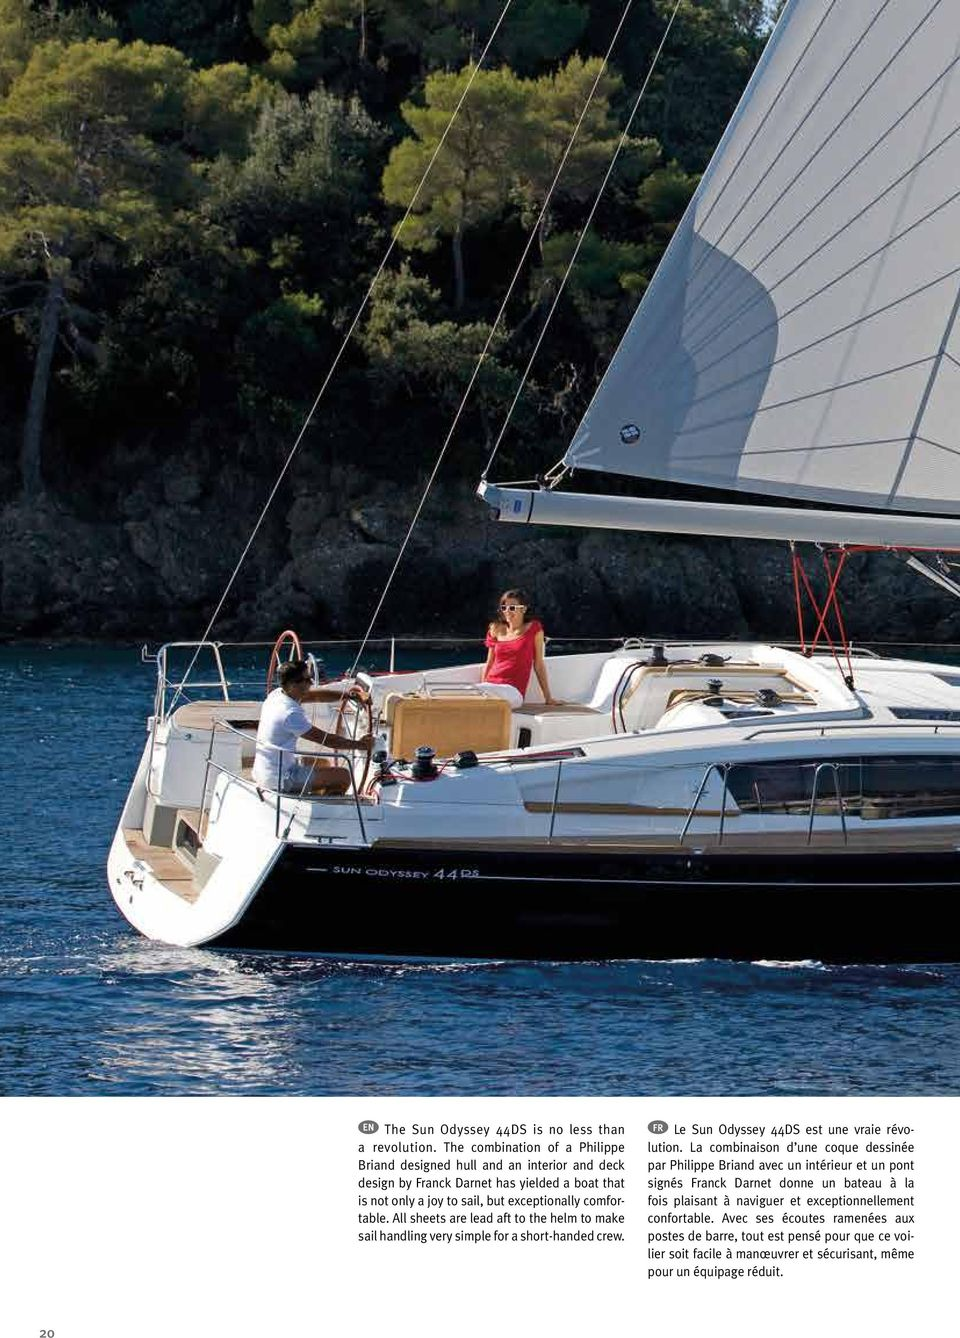 comfortable. All sheets are lead aft to the helm to make sail handling very simple for a short-handed crew. Le Sun Odyssey 44DS est une vraie révolution.